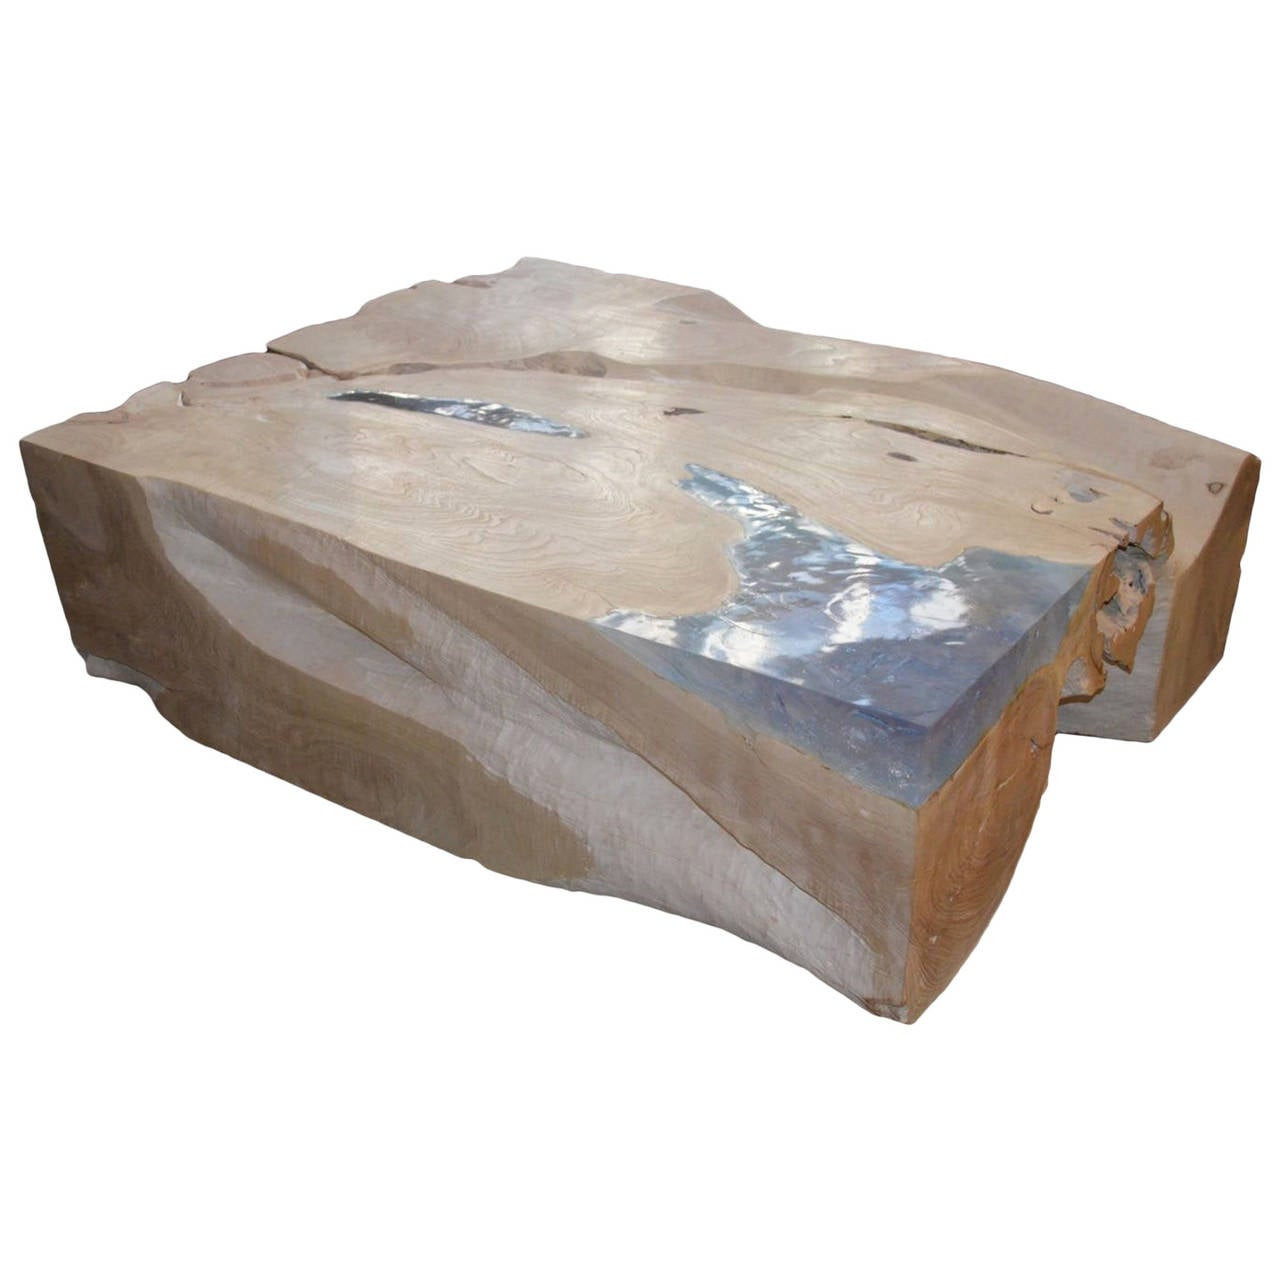 Best ideas about Resin Coffee Table . Save or Pin Andrianna Shamaris St Barts Bleached Teak Wood and Aqua Now.